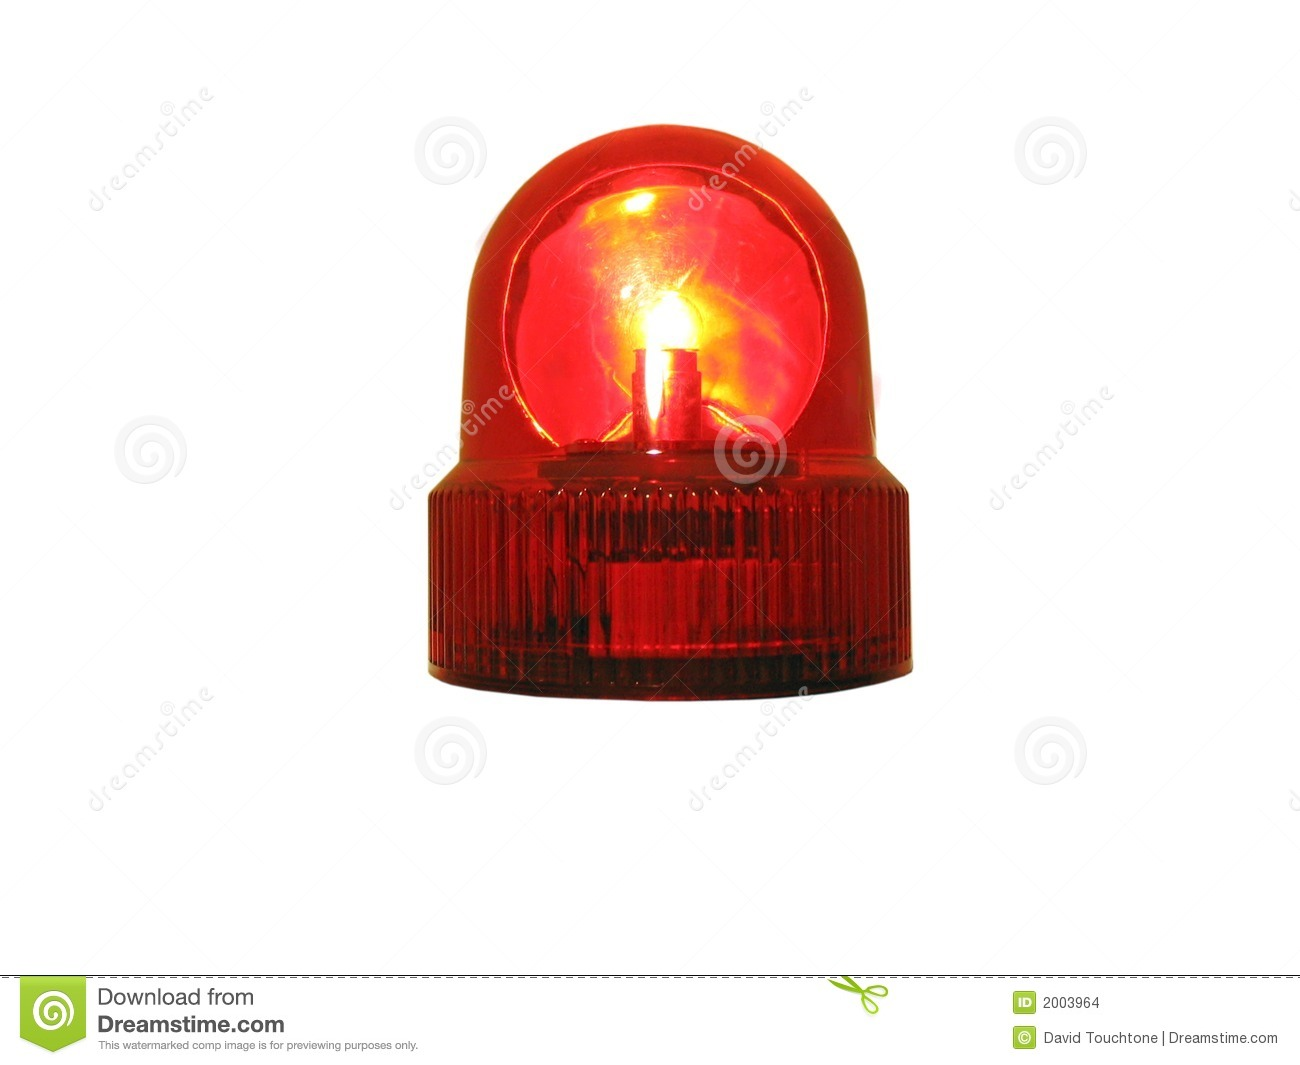 for hire equipment light cone management traffic balloo cones flashing product